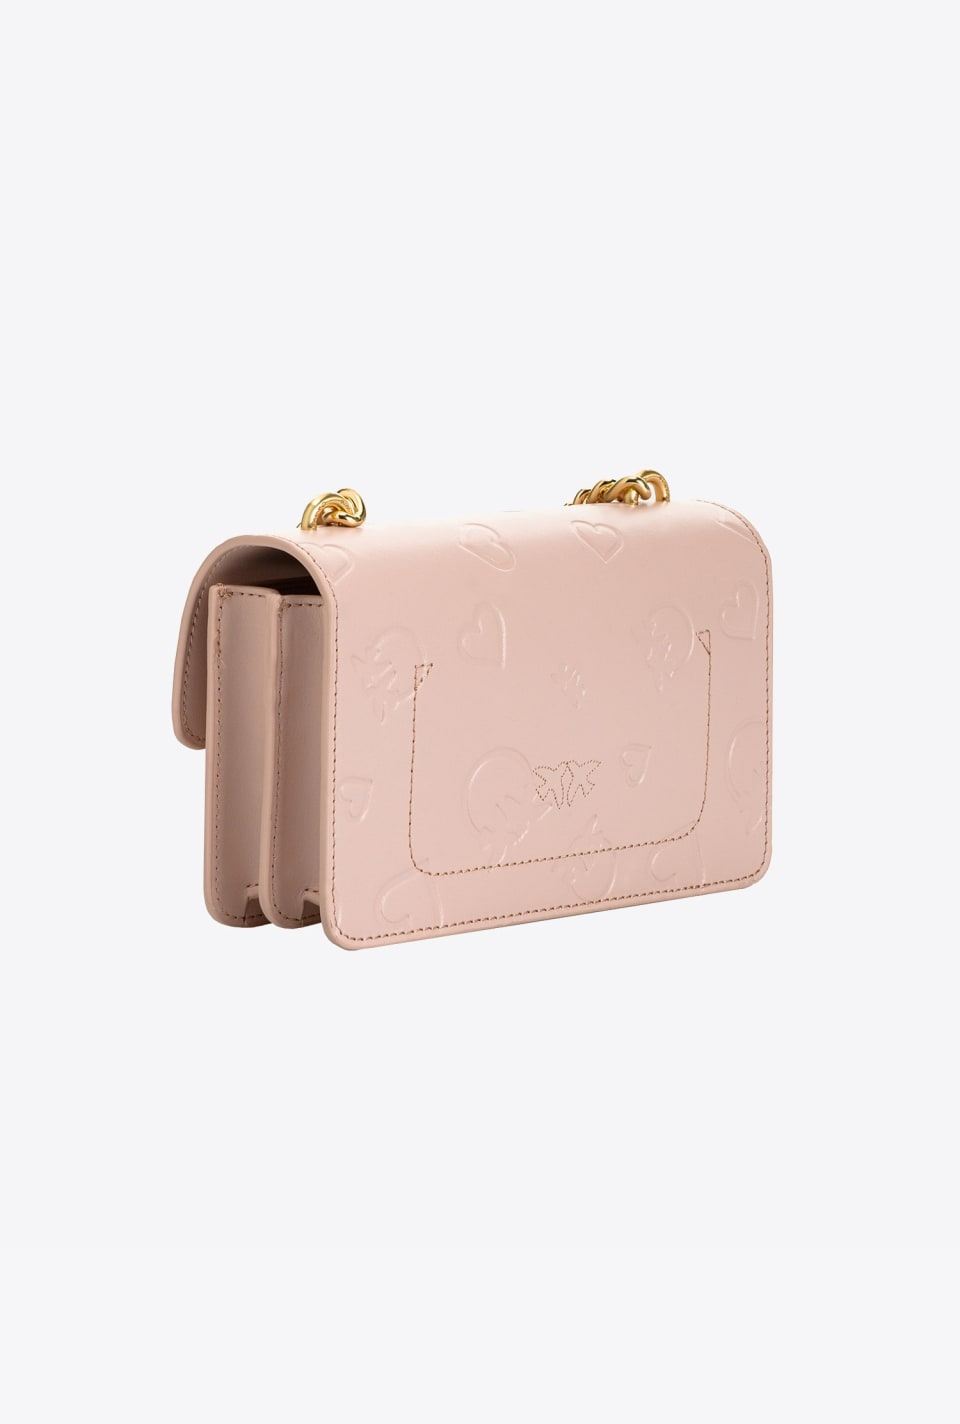 Mini Love Bag Icon PINKO Love - Pinko